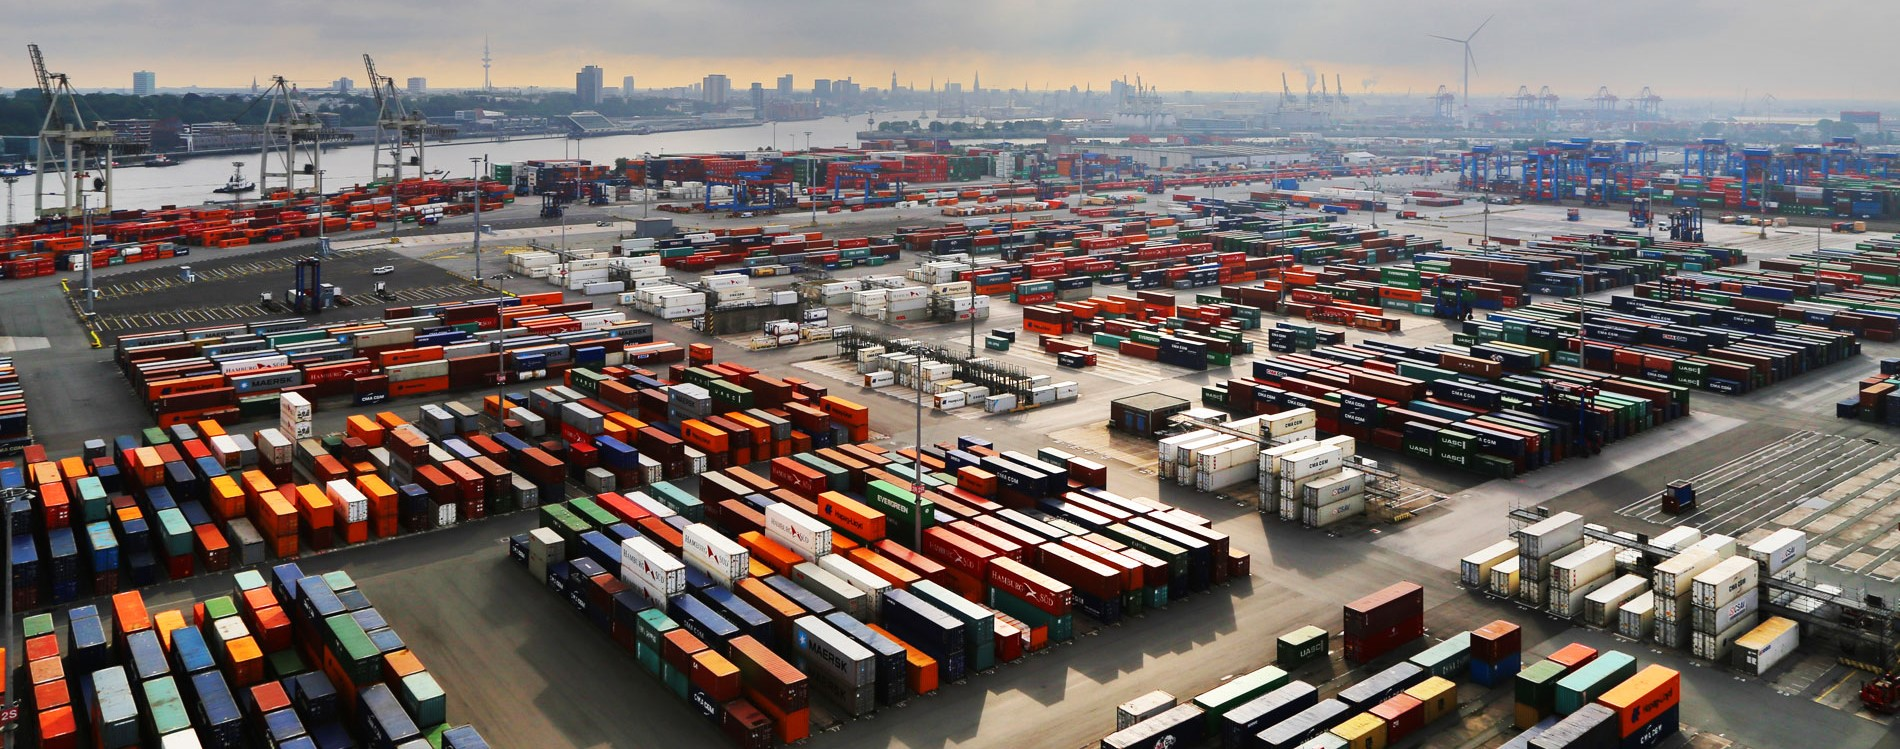 Business - The Hamburg Container Port